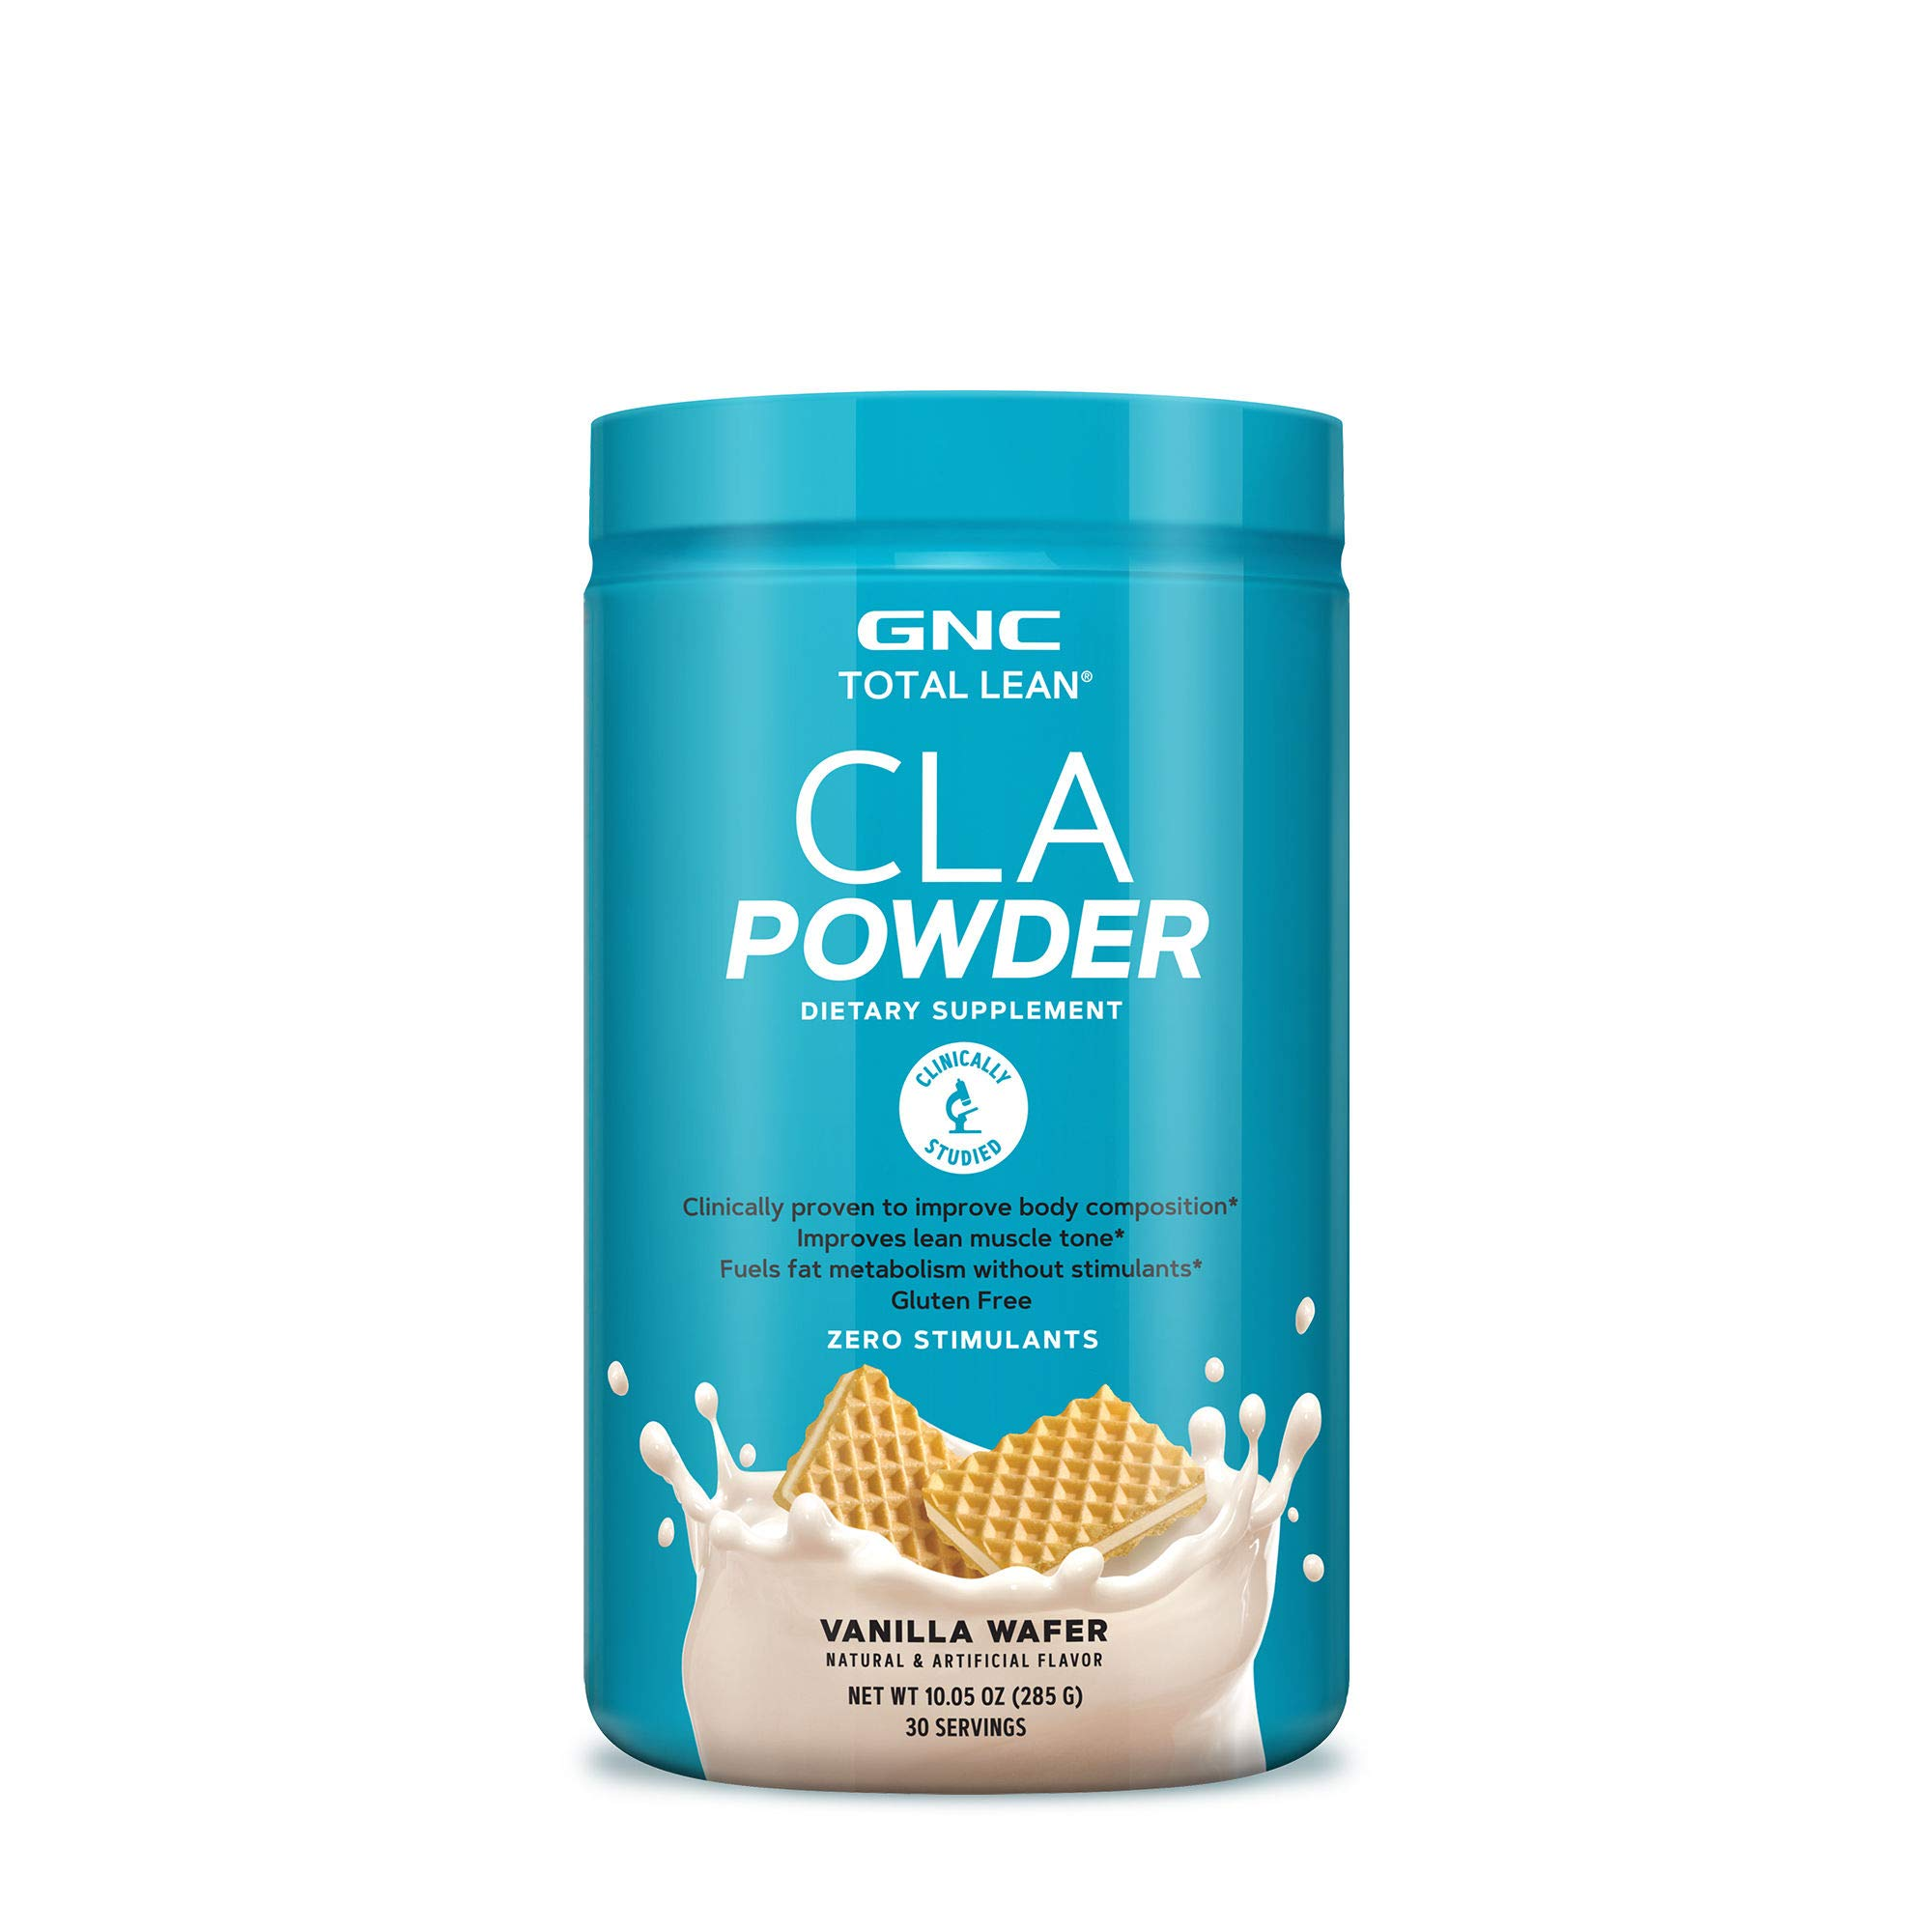 GNC Total Lean CLA Powder - Vanilla Wafer